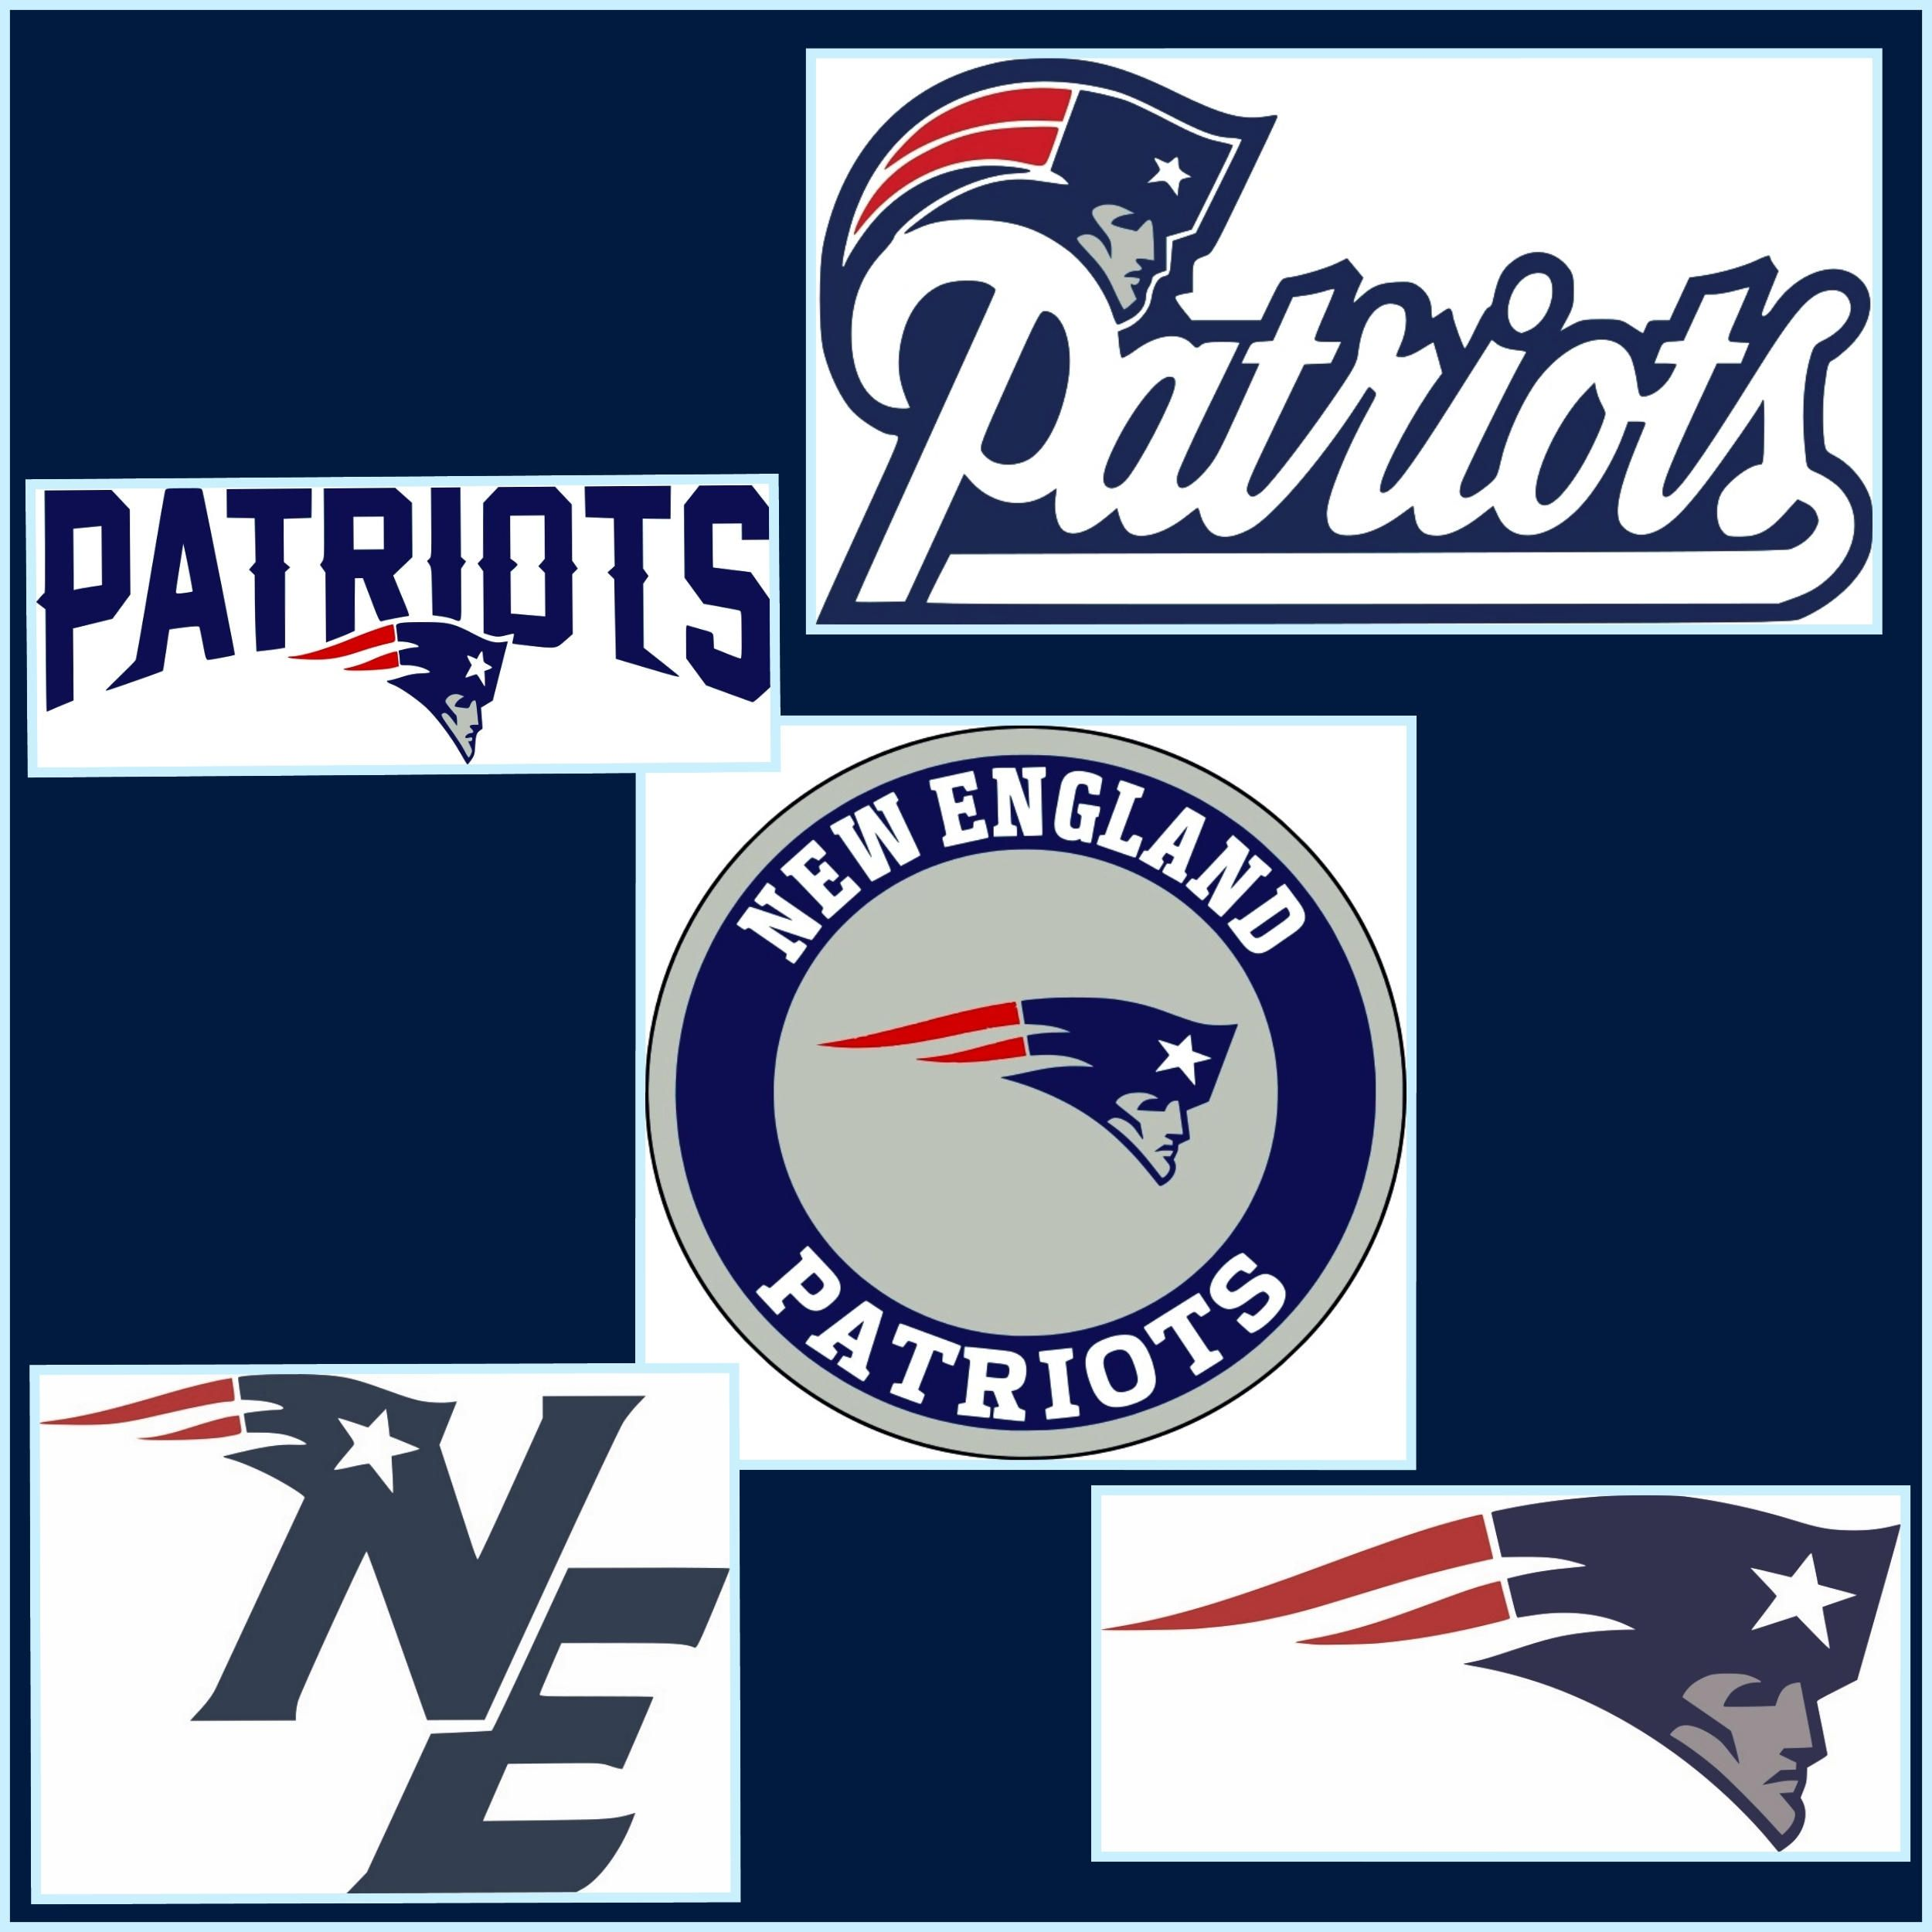 New England Patriots Svg Patriots Layered Svg Files Made For The Cricut And Silhouette By Topnotchcraftsco On Etsy Cricut Etsy Download Svg